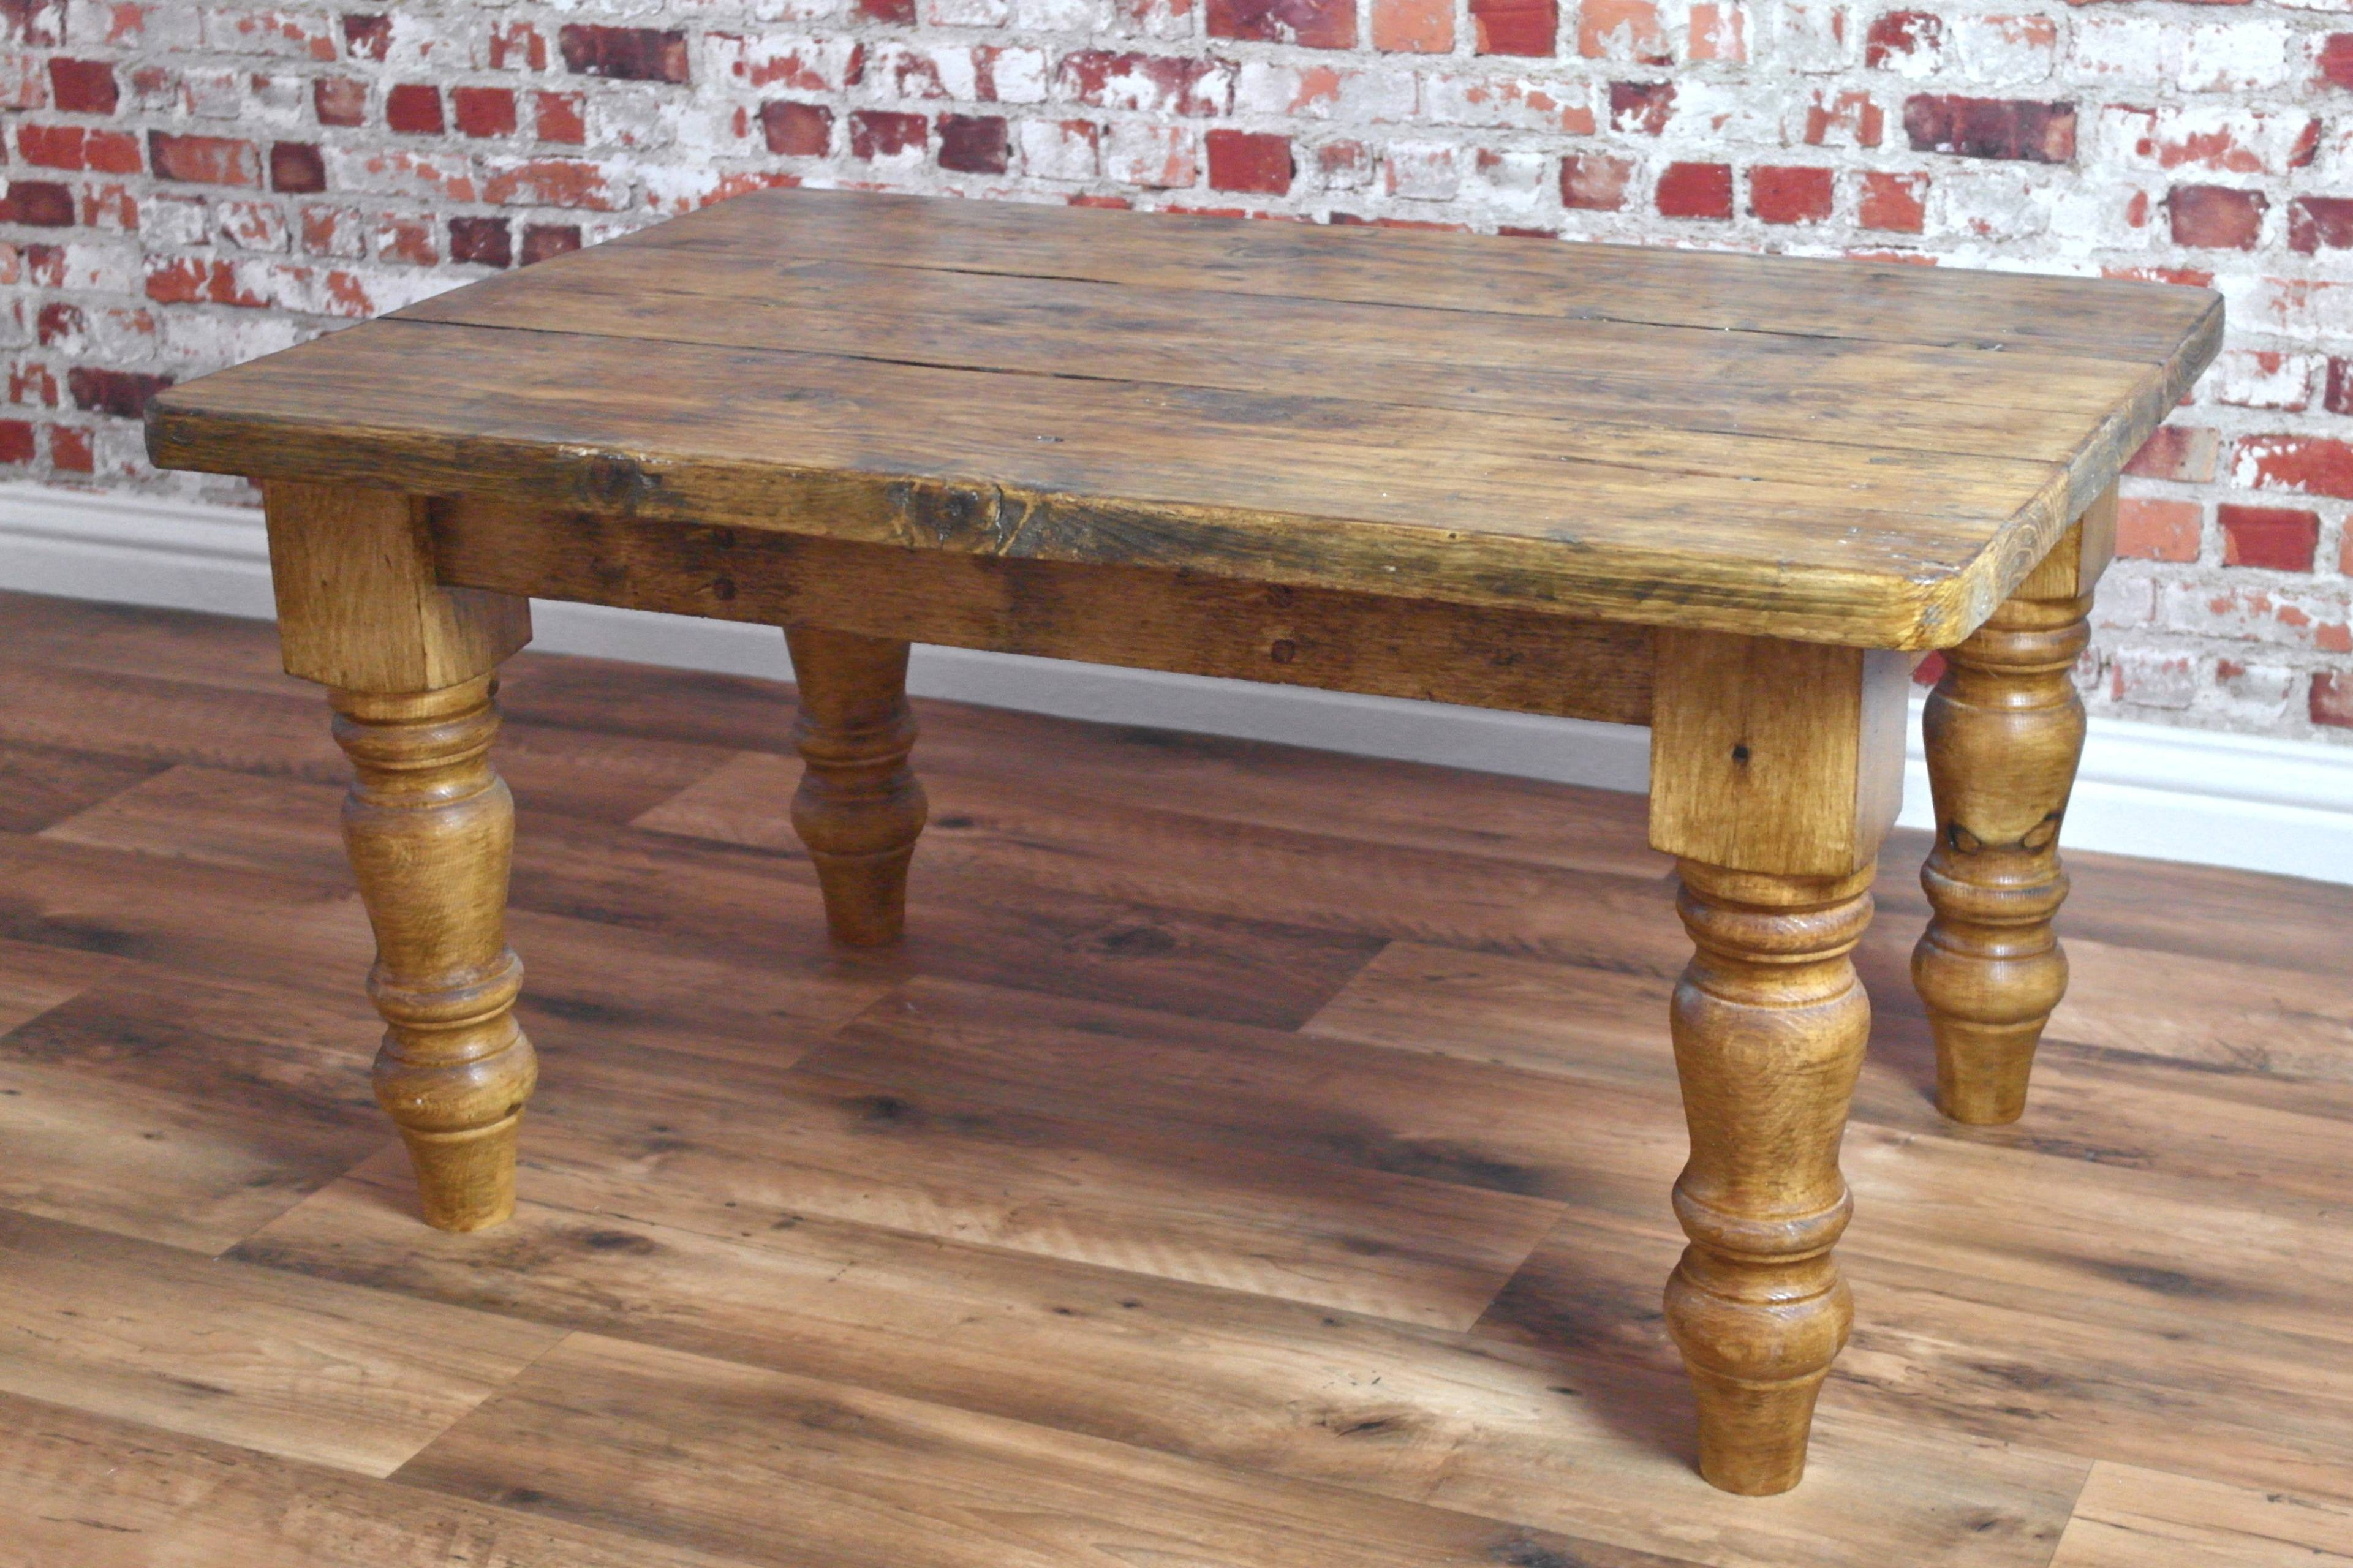 Large Rustic Coffee Table – Rustic Coffee Tables On Pinterest with regard to Old Pine Coffee Tables (Image 14 of 30)